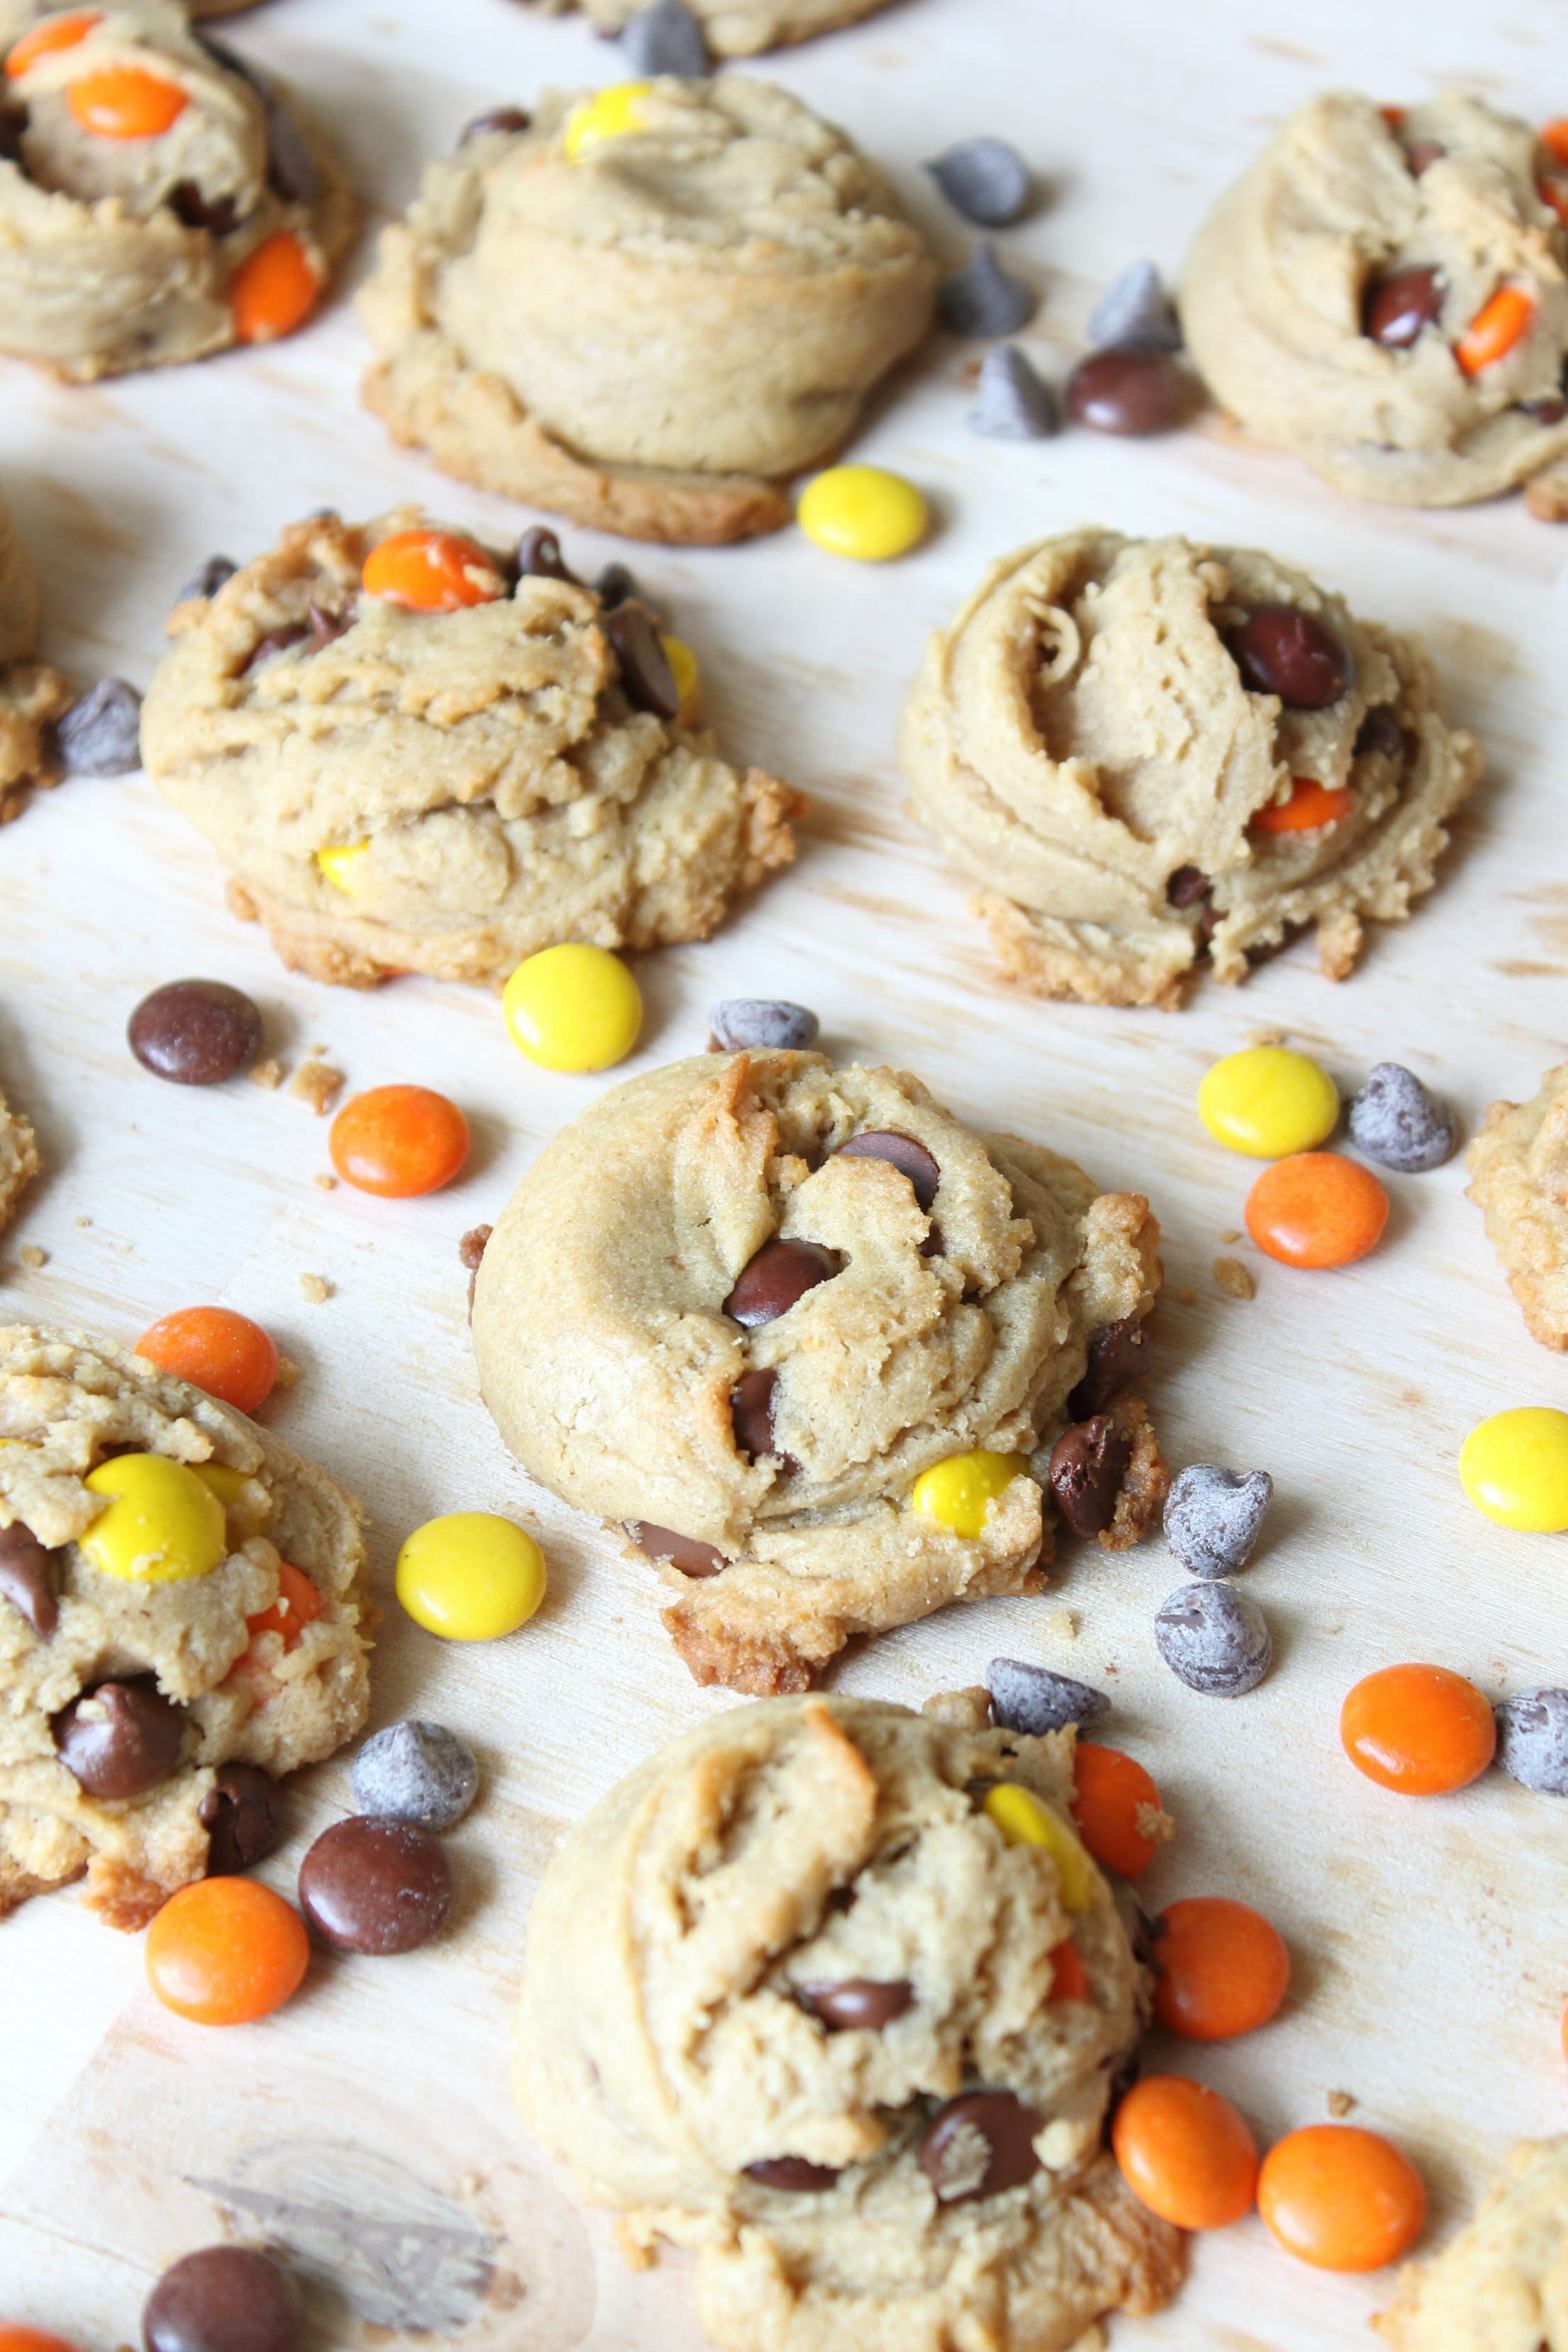 Reese's Pieces Peanut Butter Cookies with Reese's pieces and chocolate chips